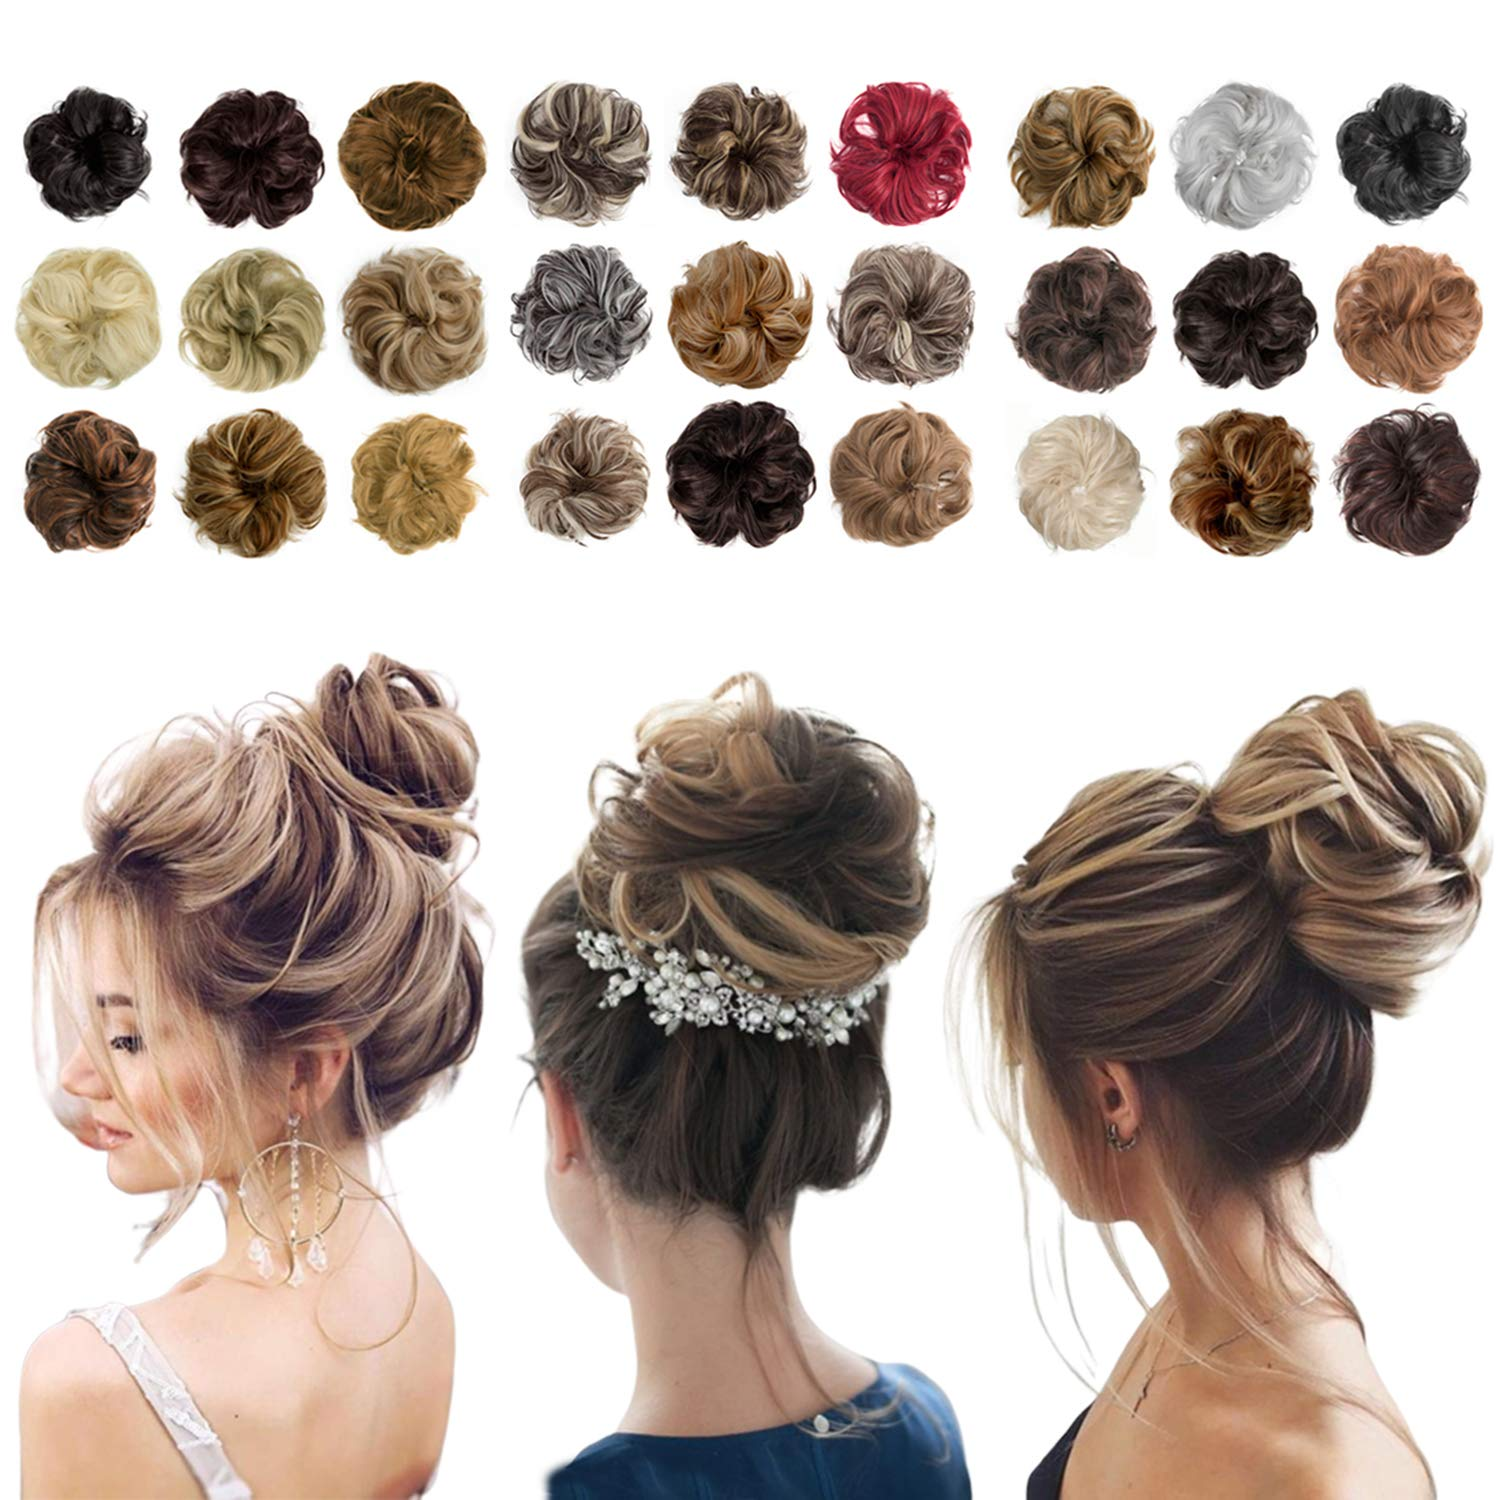 Messy Bun Hair Piece Thick Updo Scrunchies Hair Extensions Ponytail Hair Accessories Light Brown Mix Ash Blonde